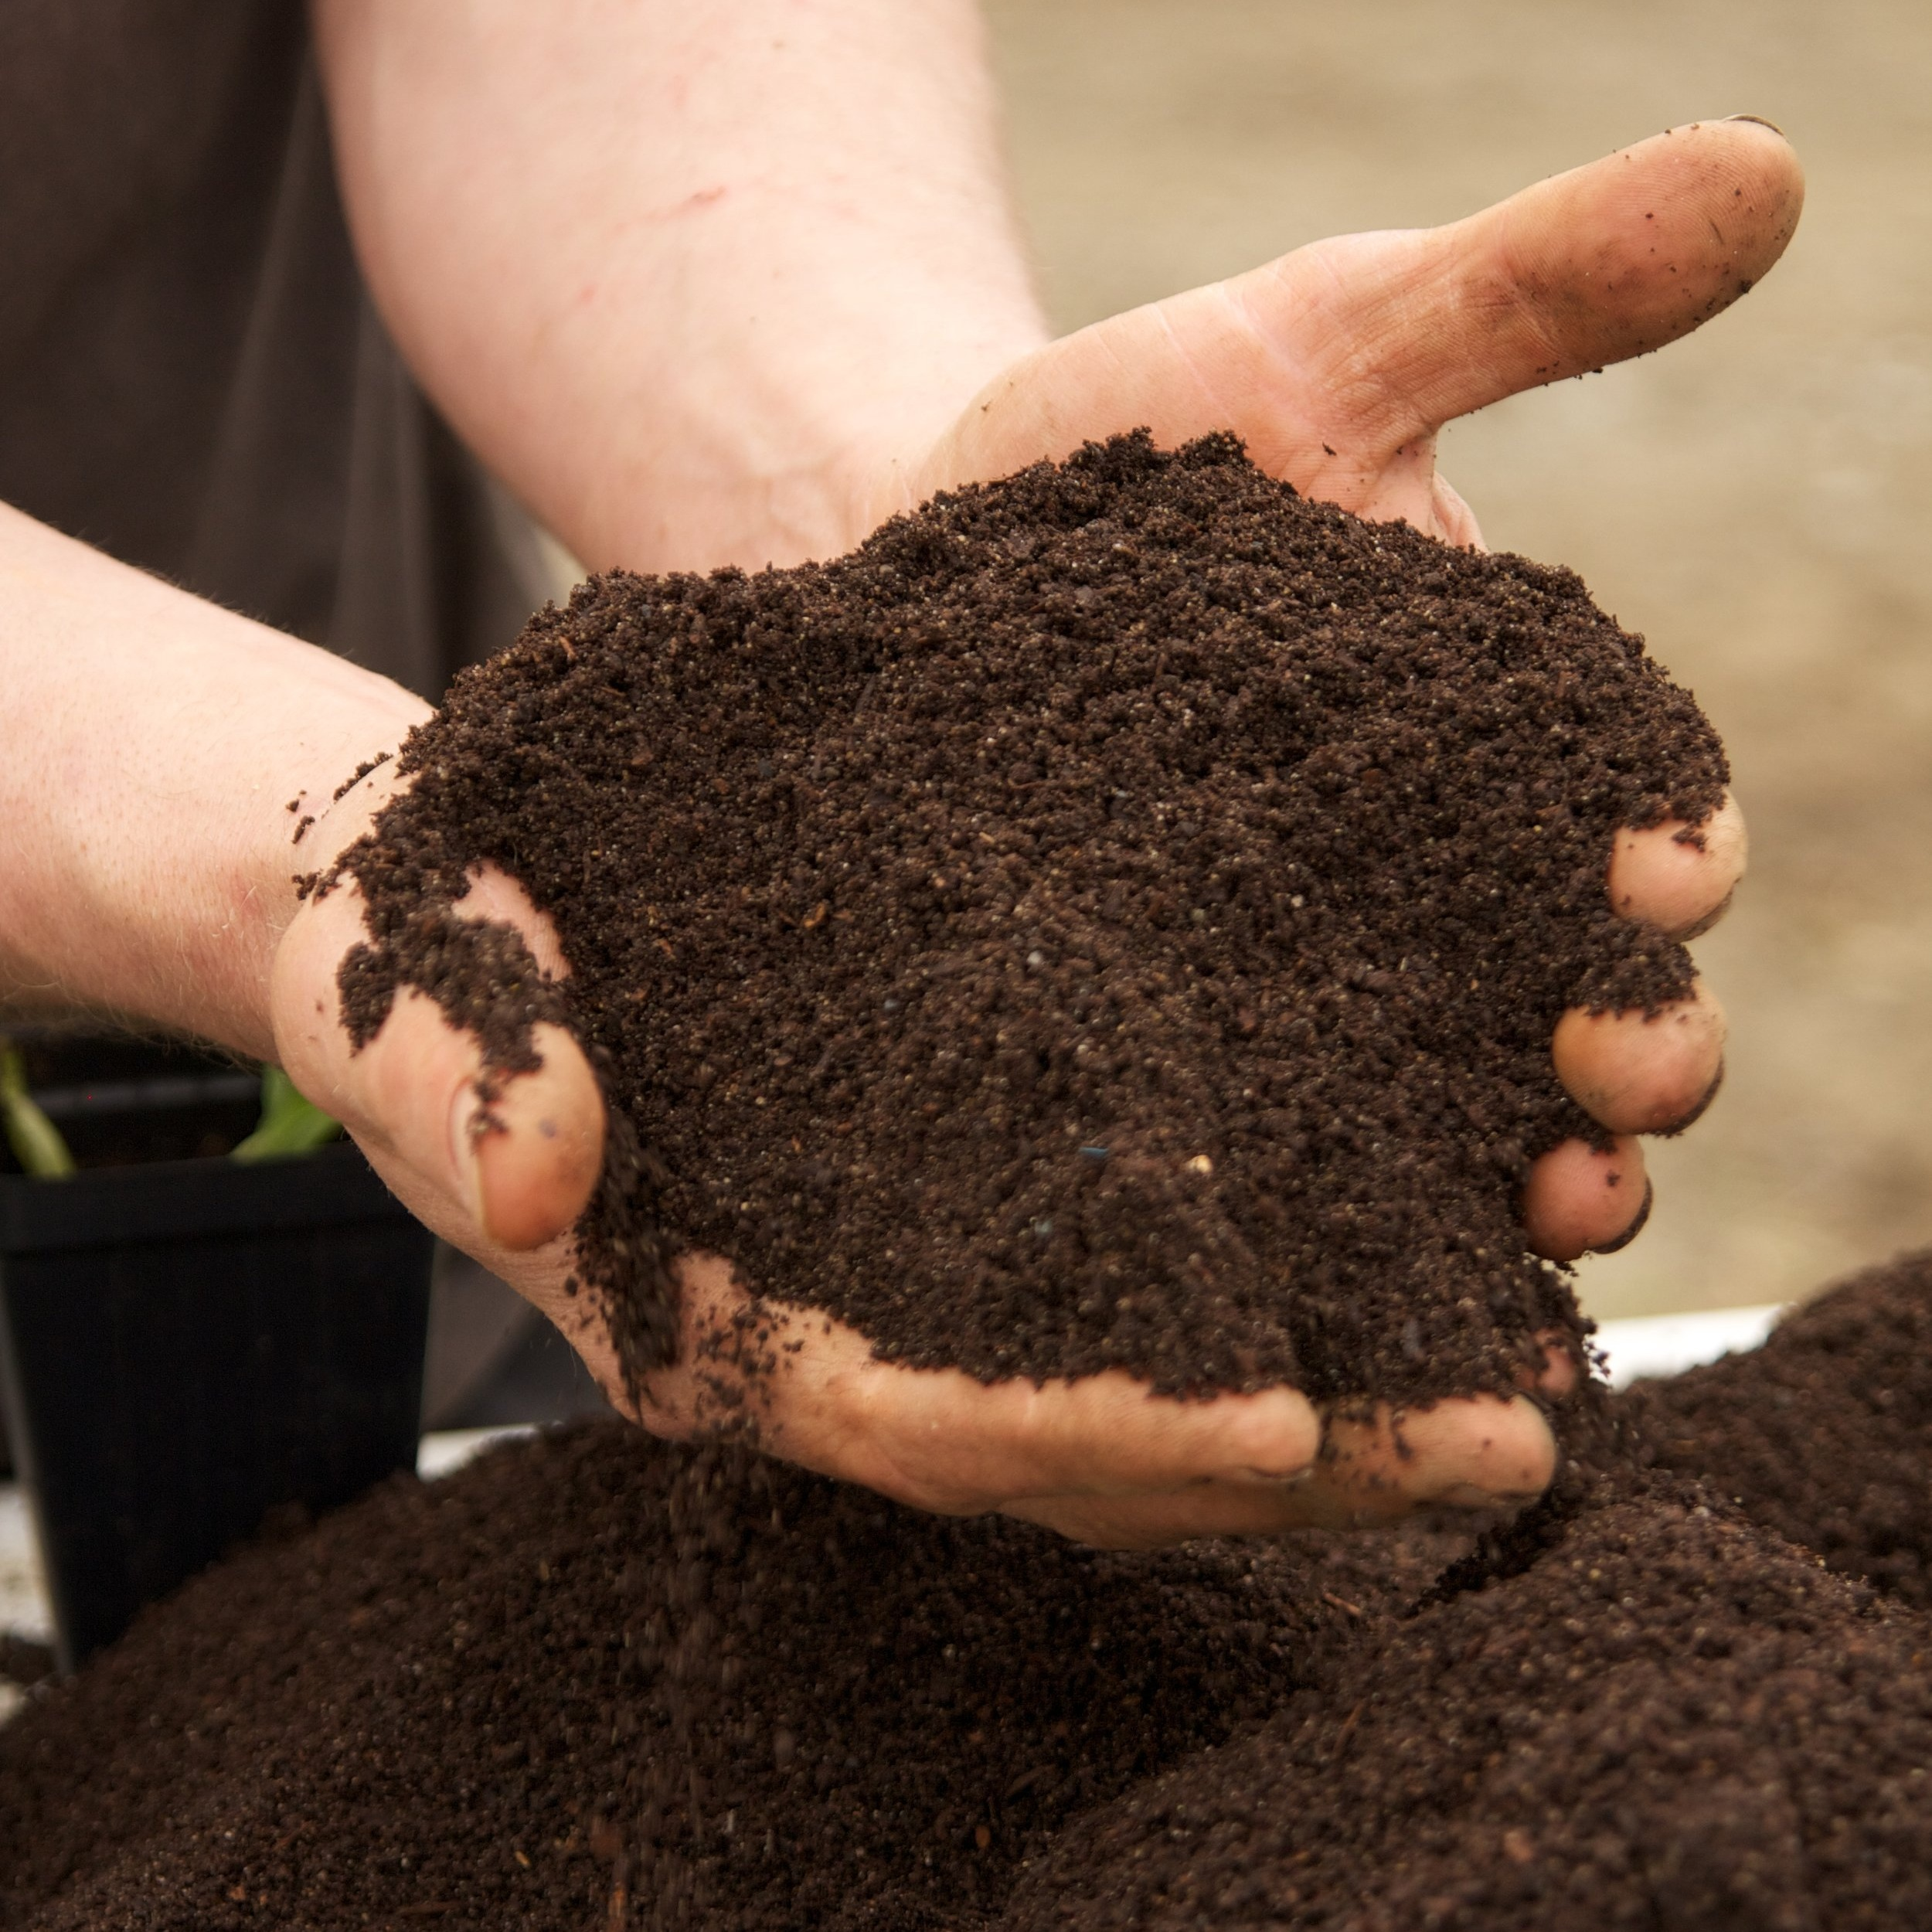 black+dirt+farm+050115+447.jpg